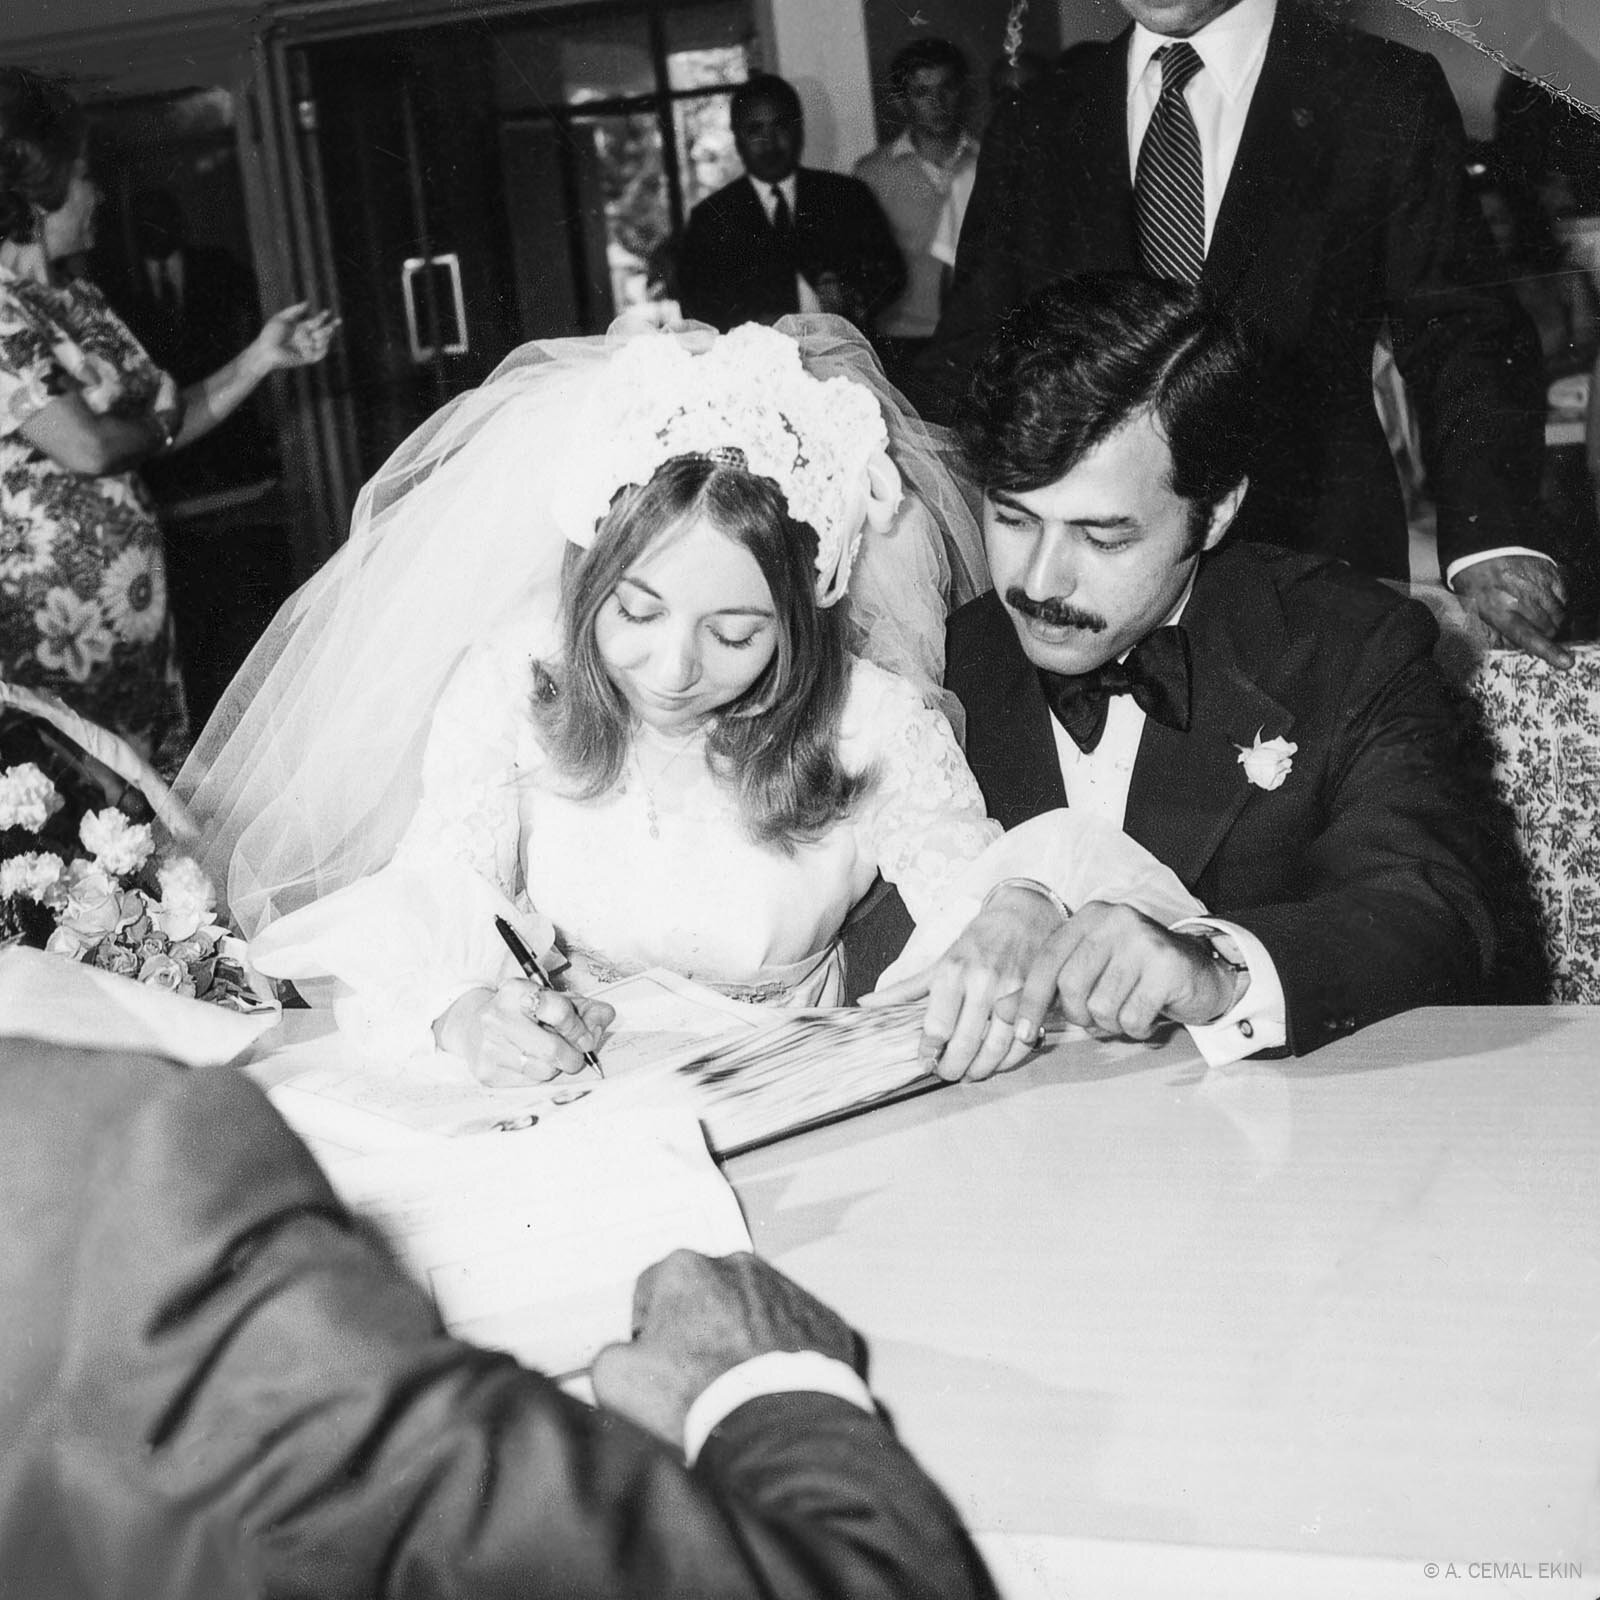 Jan, Cemal wedding day May 20, 1971